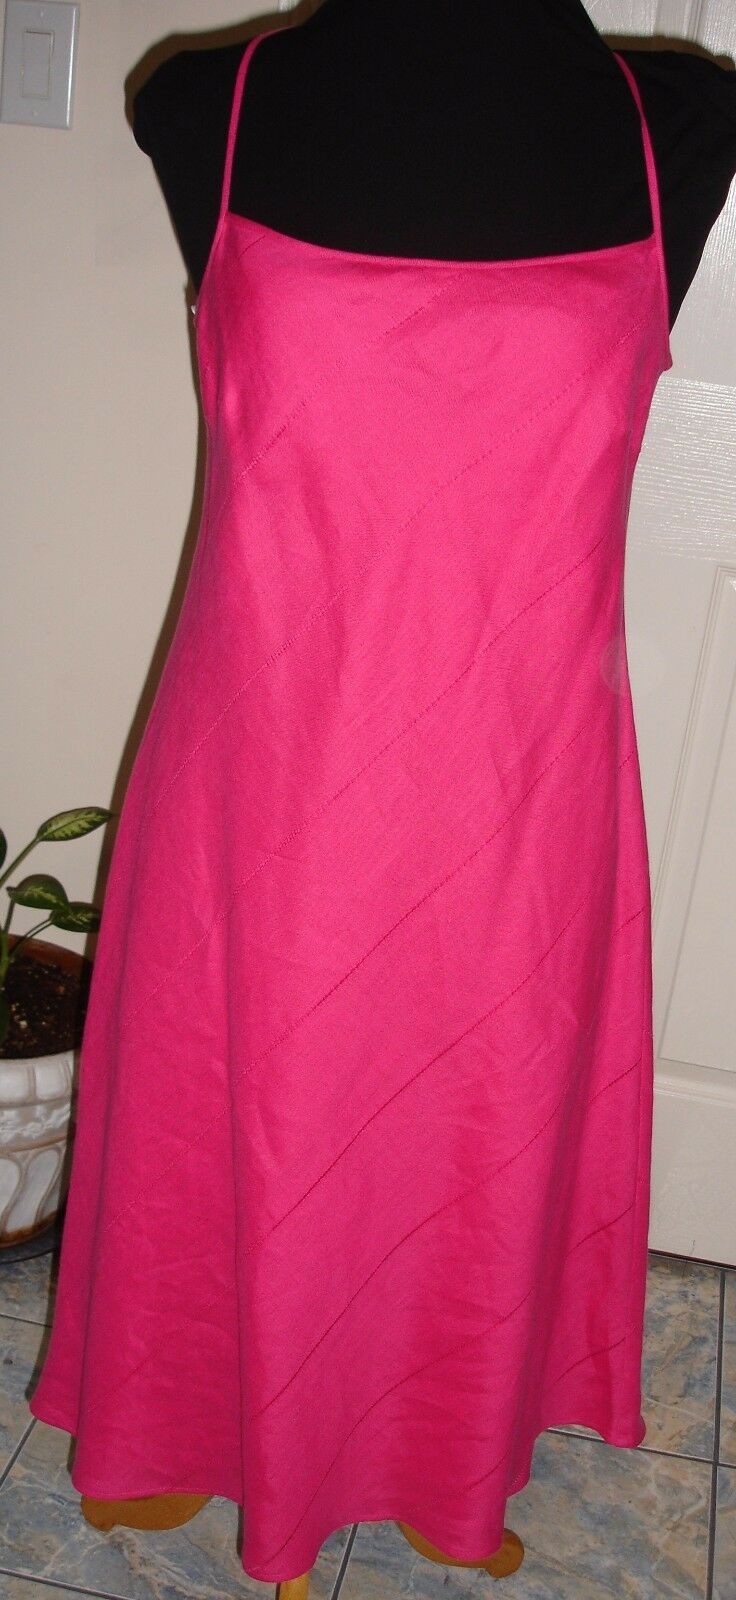 ESCADA FUCHSIA LINEN DRESS Größe 40 GORGEOUS